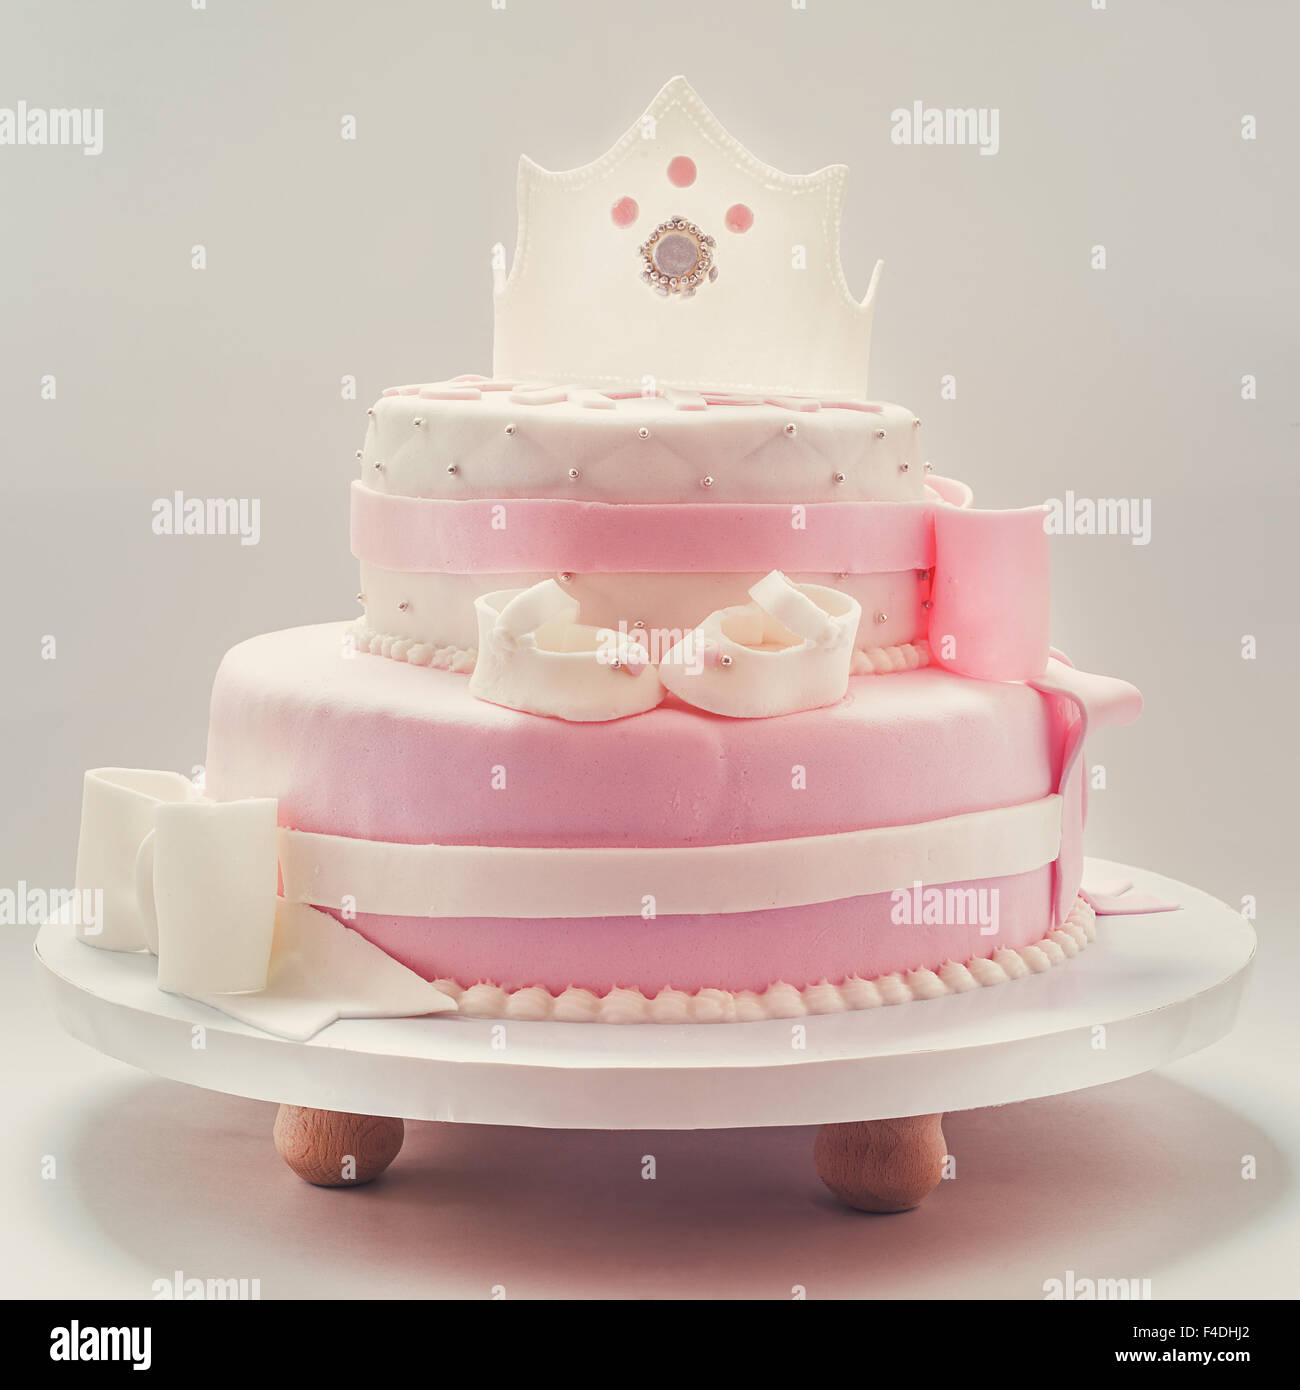 Peachy Decoration Details Of A Birthday Cake Made For Little Baby Girl Birthday Cards Printable Riciscafe Filternl